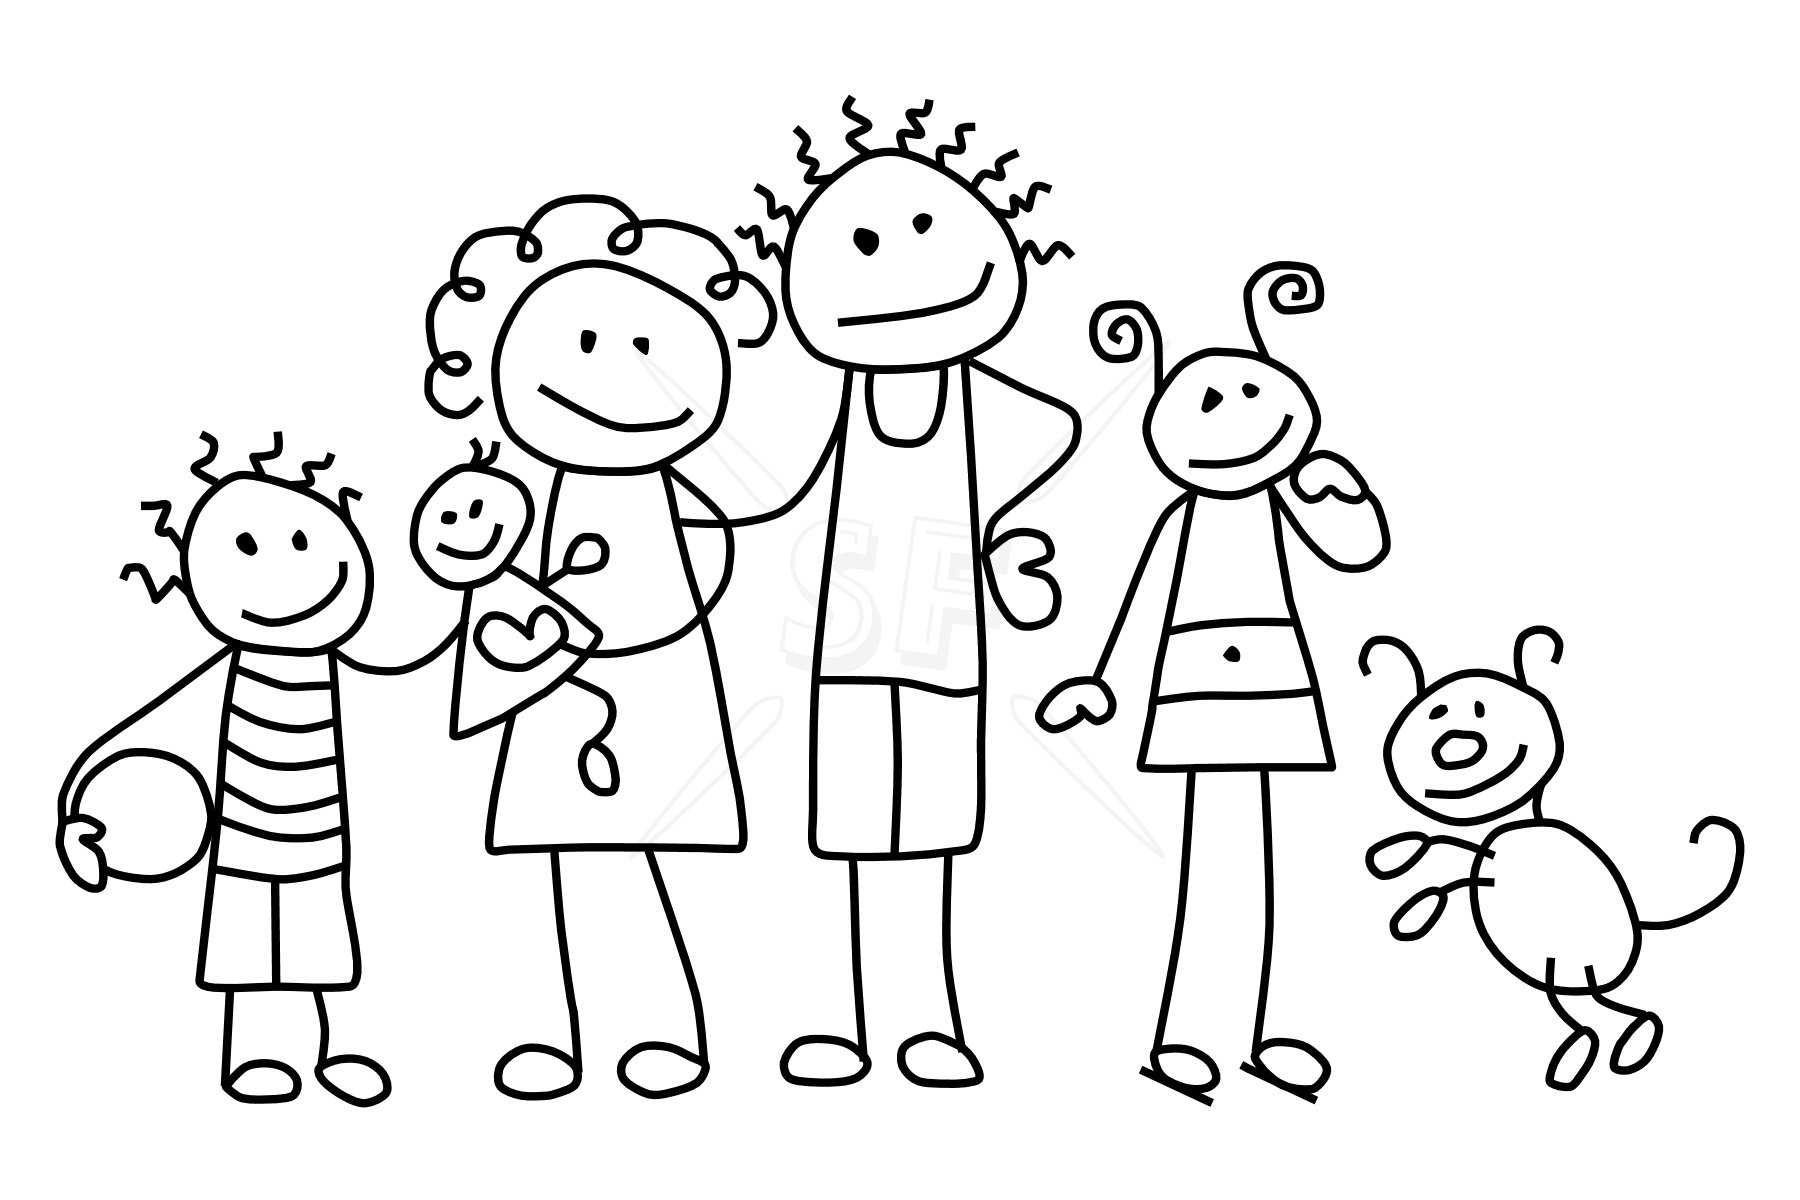 Family clipart white. Family clipart white. Black and